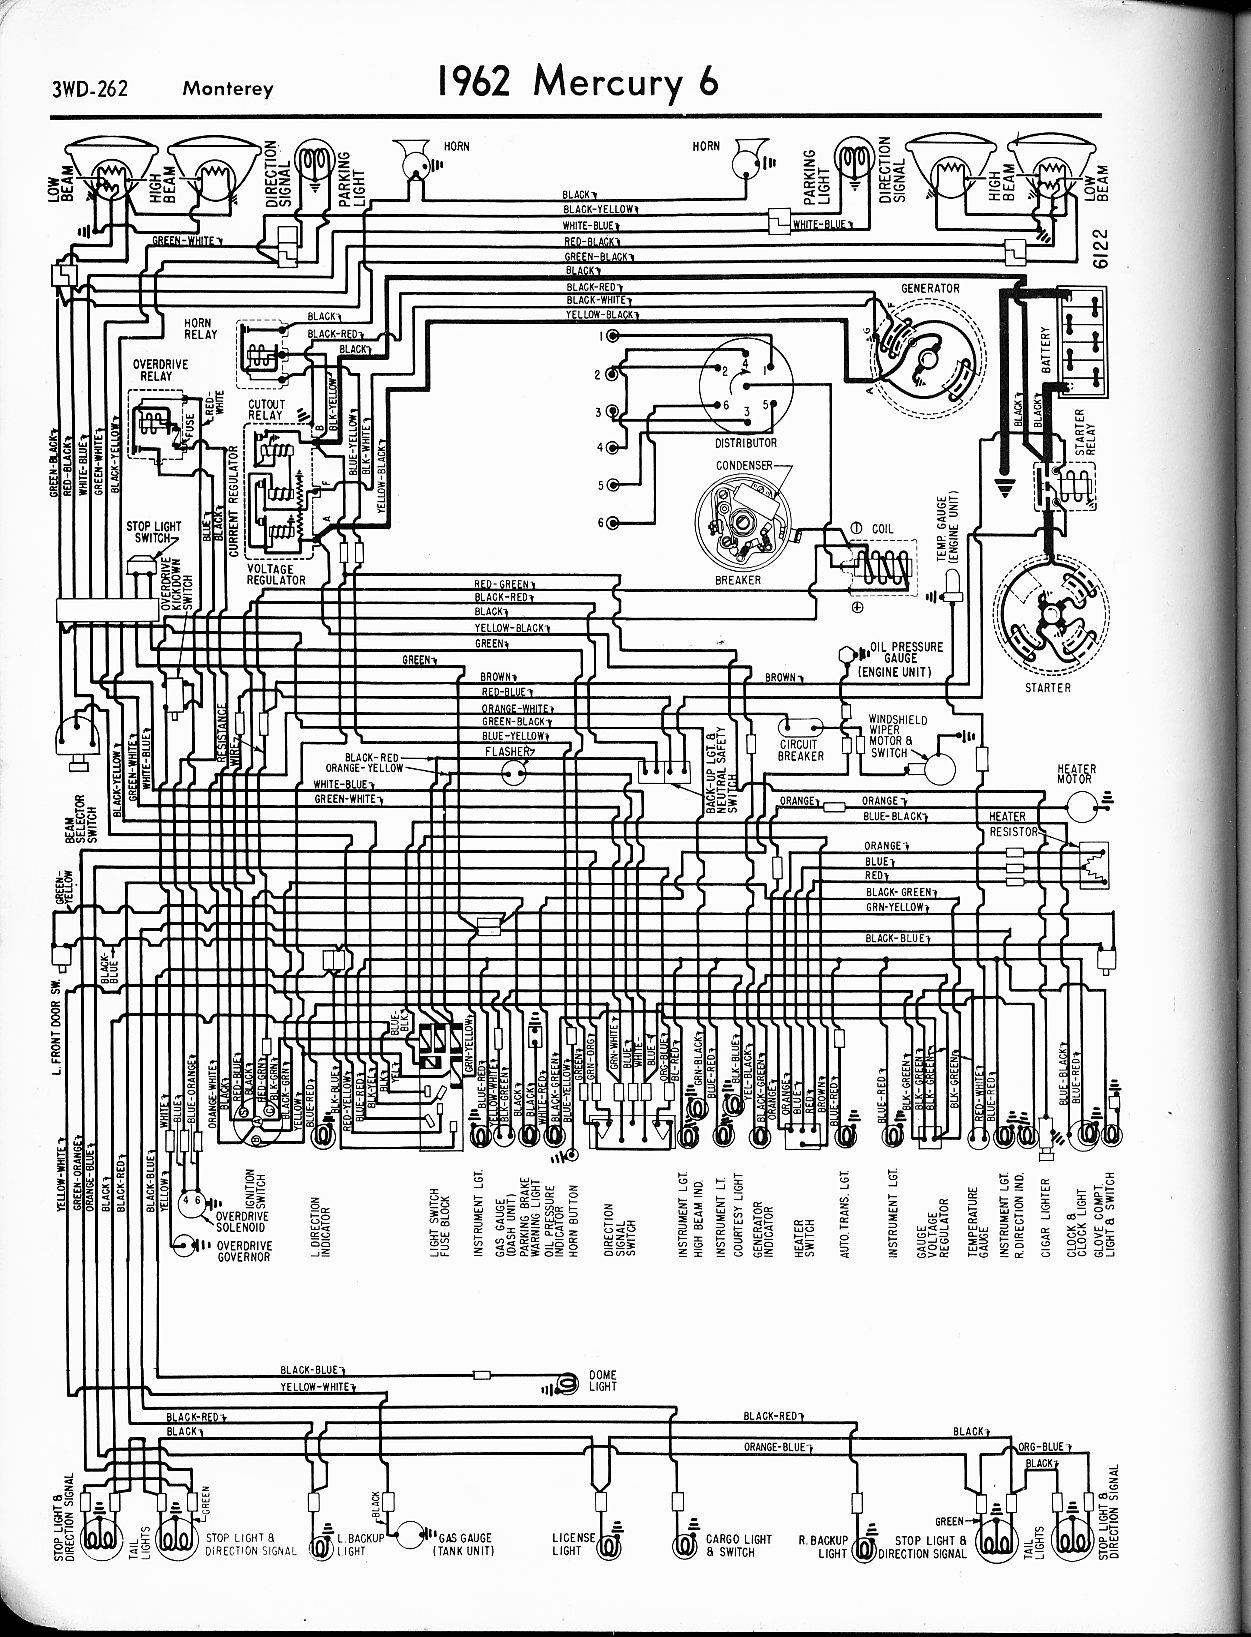 hight resolution of 1962 6 monterey mercury wiring diagrams the old car manual project 1962 6 monterey 1970 chevy truck ignition